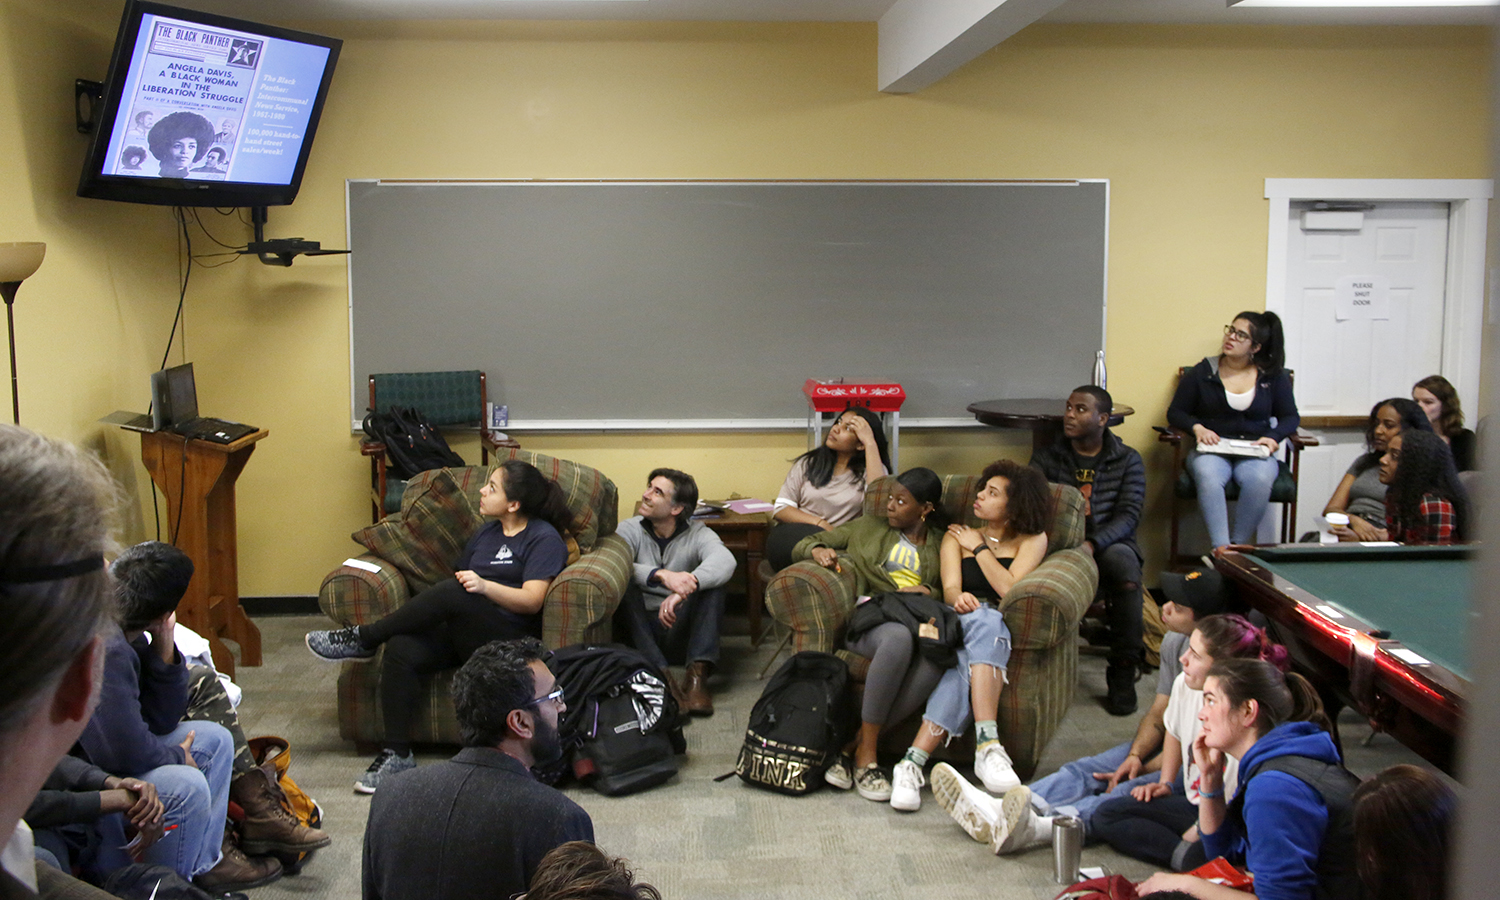 """Associate Professor of Education Khuram Hussain (bottom) leads a discussion on the history of the Black Panter Party during the """"The Black Panther Party: Education and Liberation"""" event in the Office of intercultural affairs."""